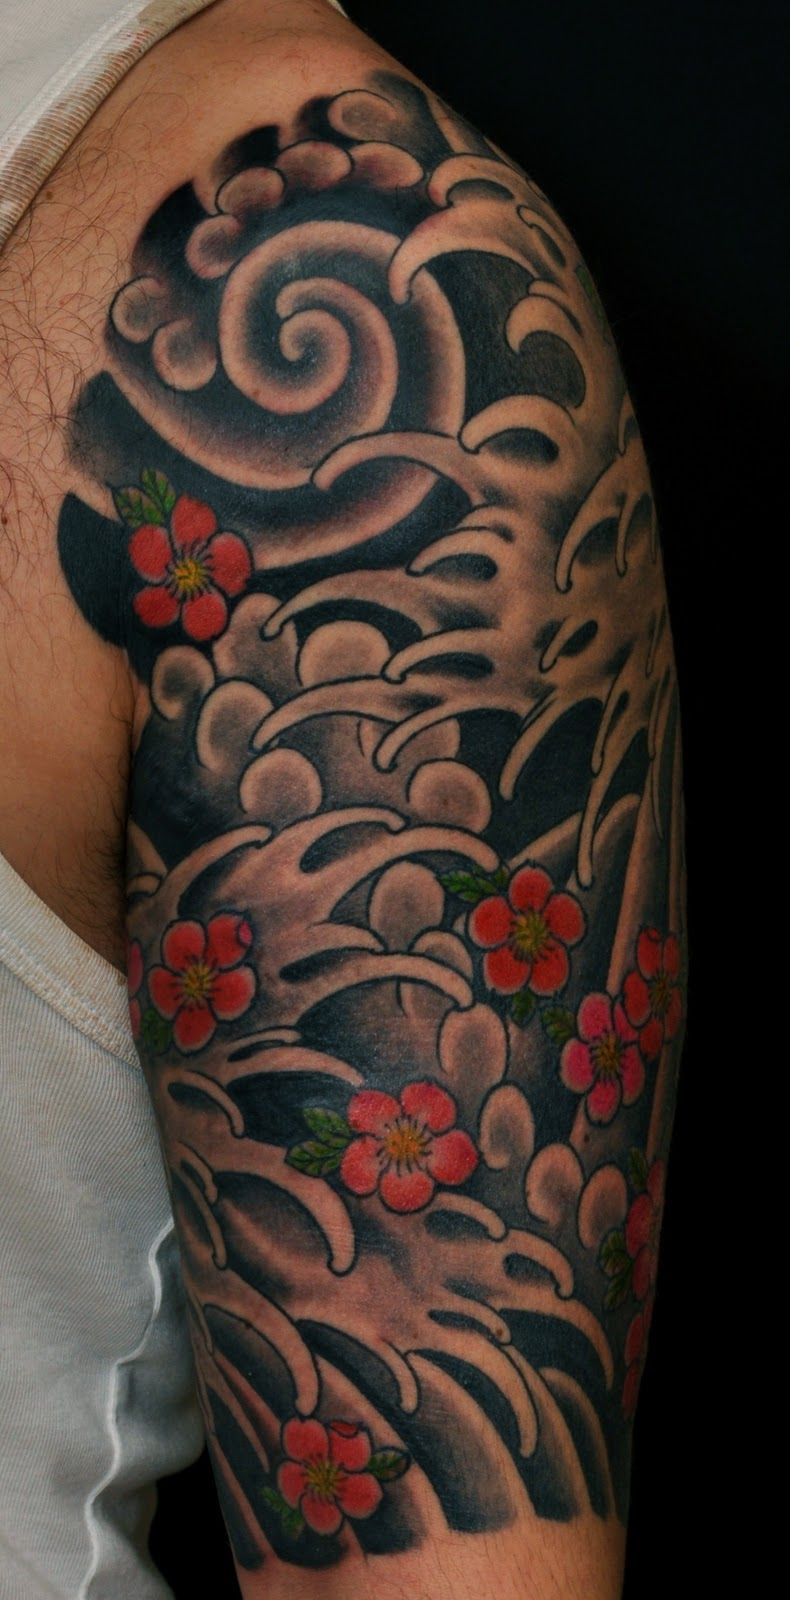 45 amazing japanese tattoo designs tattoo easily - Japanese Wave Tattoo With Cherry Blossoms Google Search